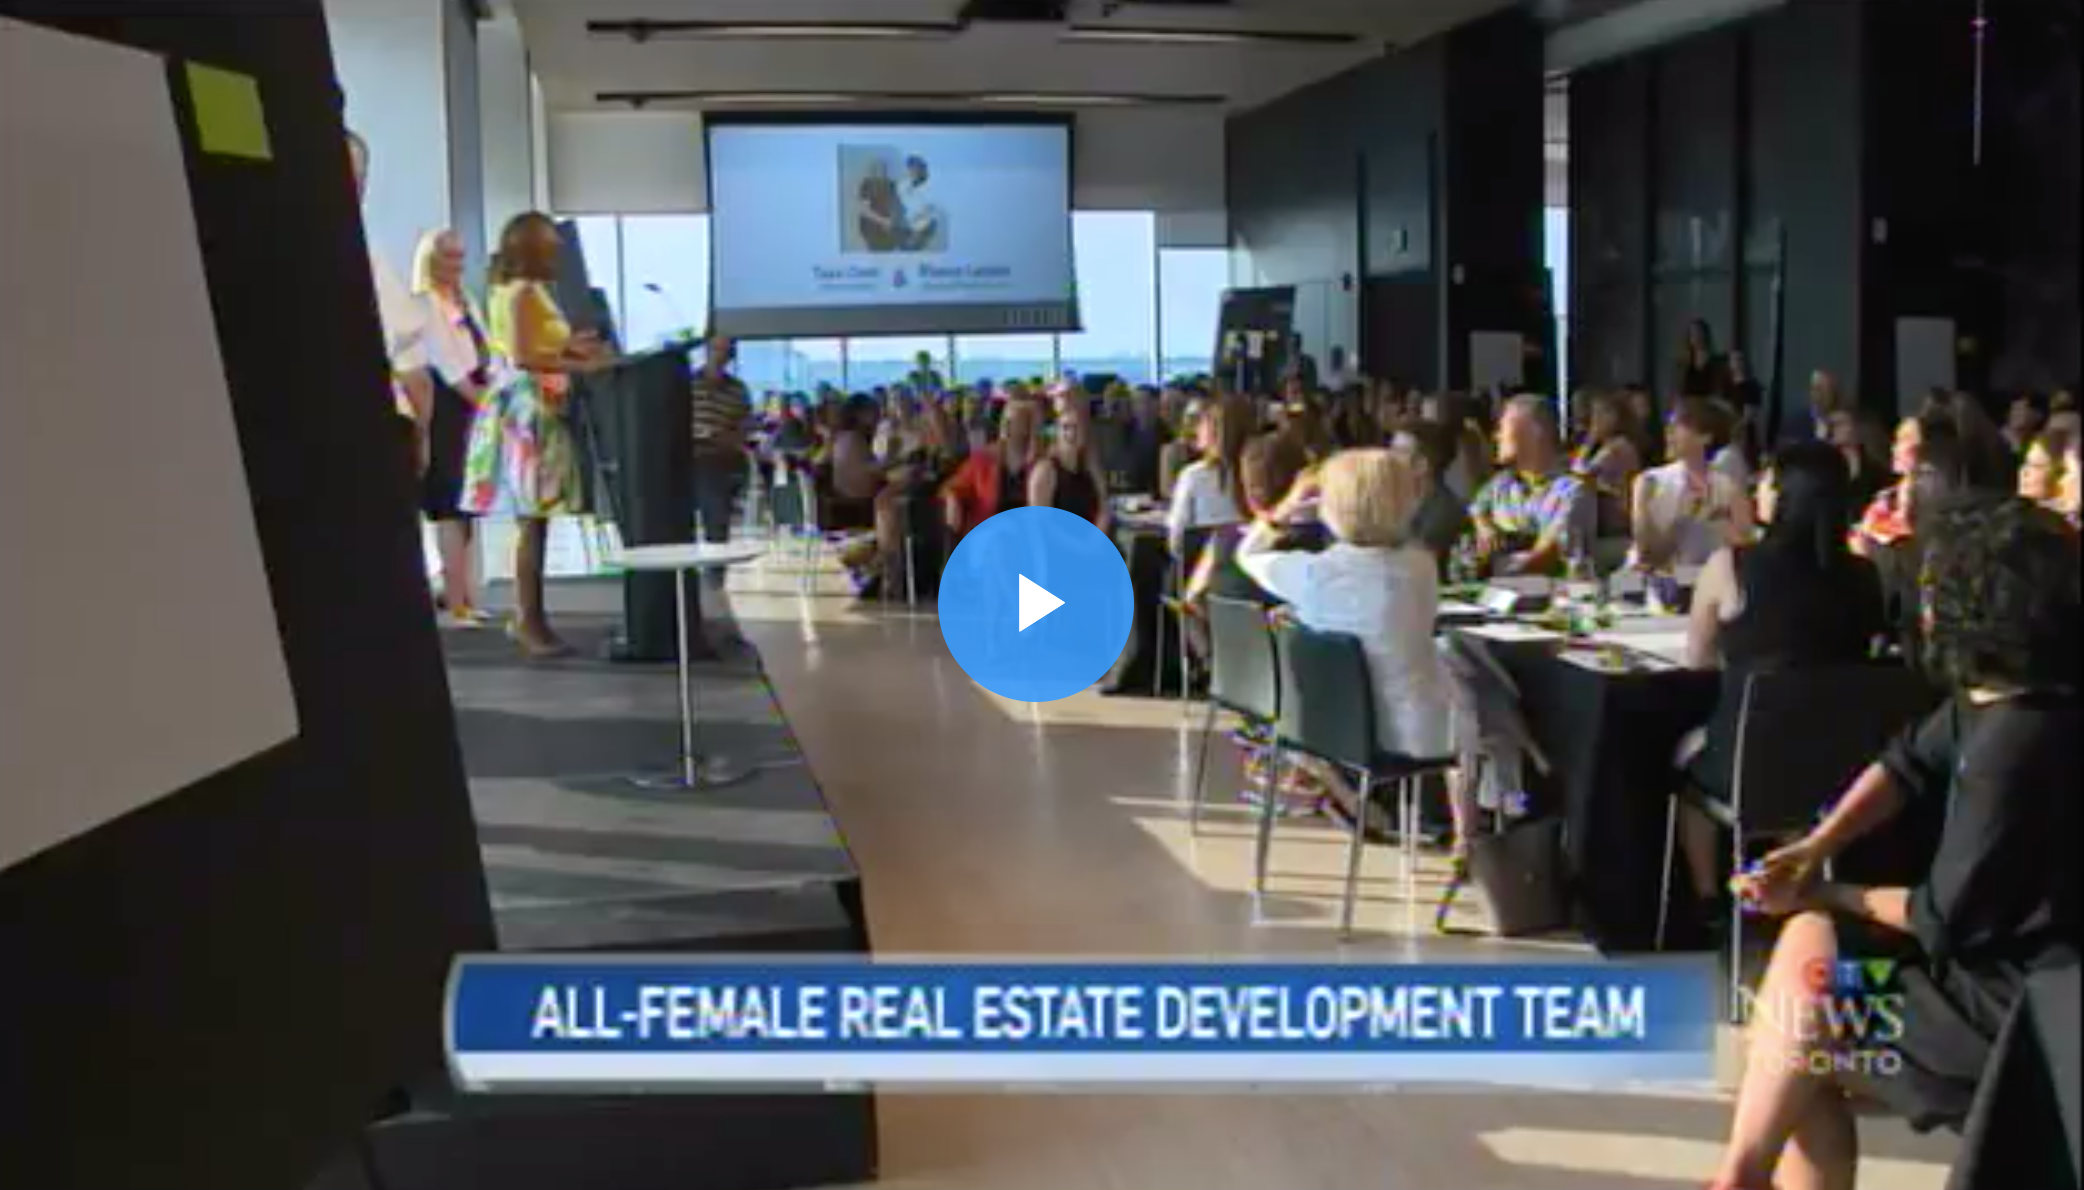 "ctv news - ""Public consultation session being held downtown toronto by an all-female real estate development team"" - July 10, 2019VIEW VIDEO"